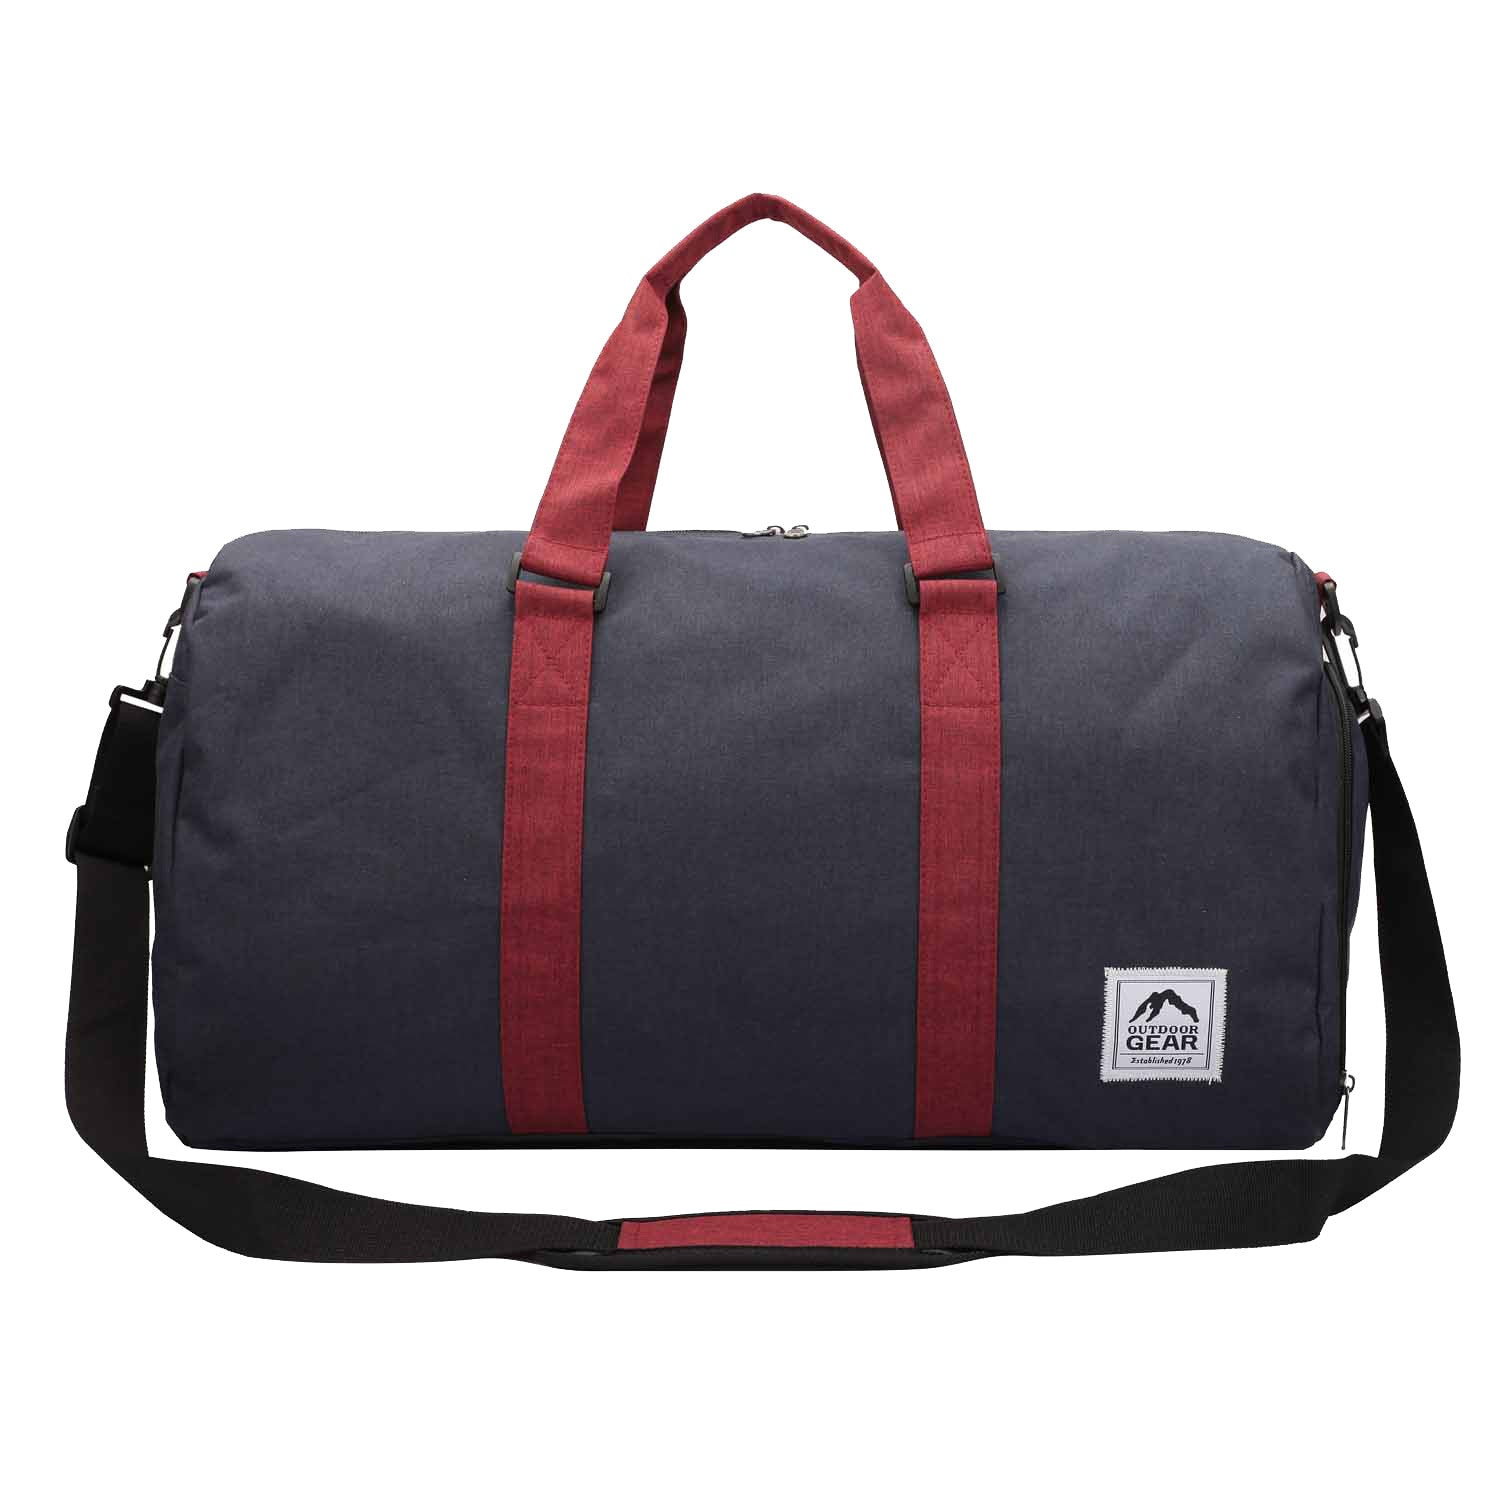 Travel Holdall Overnight Weekend Bag RL820NR